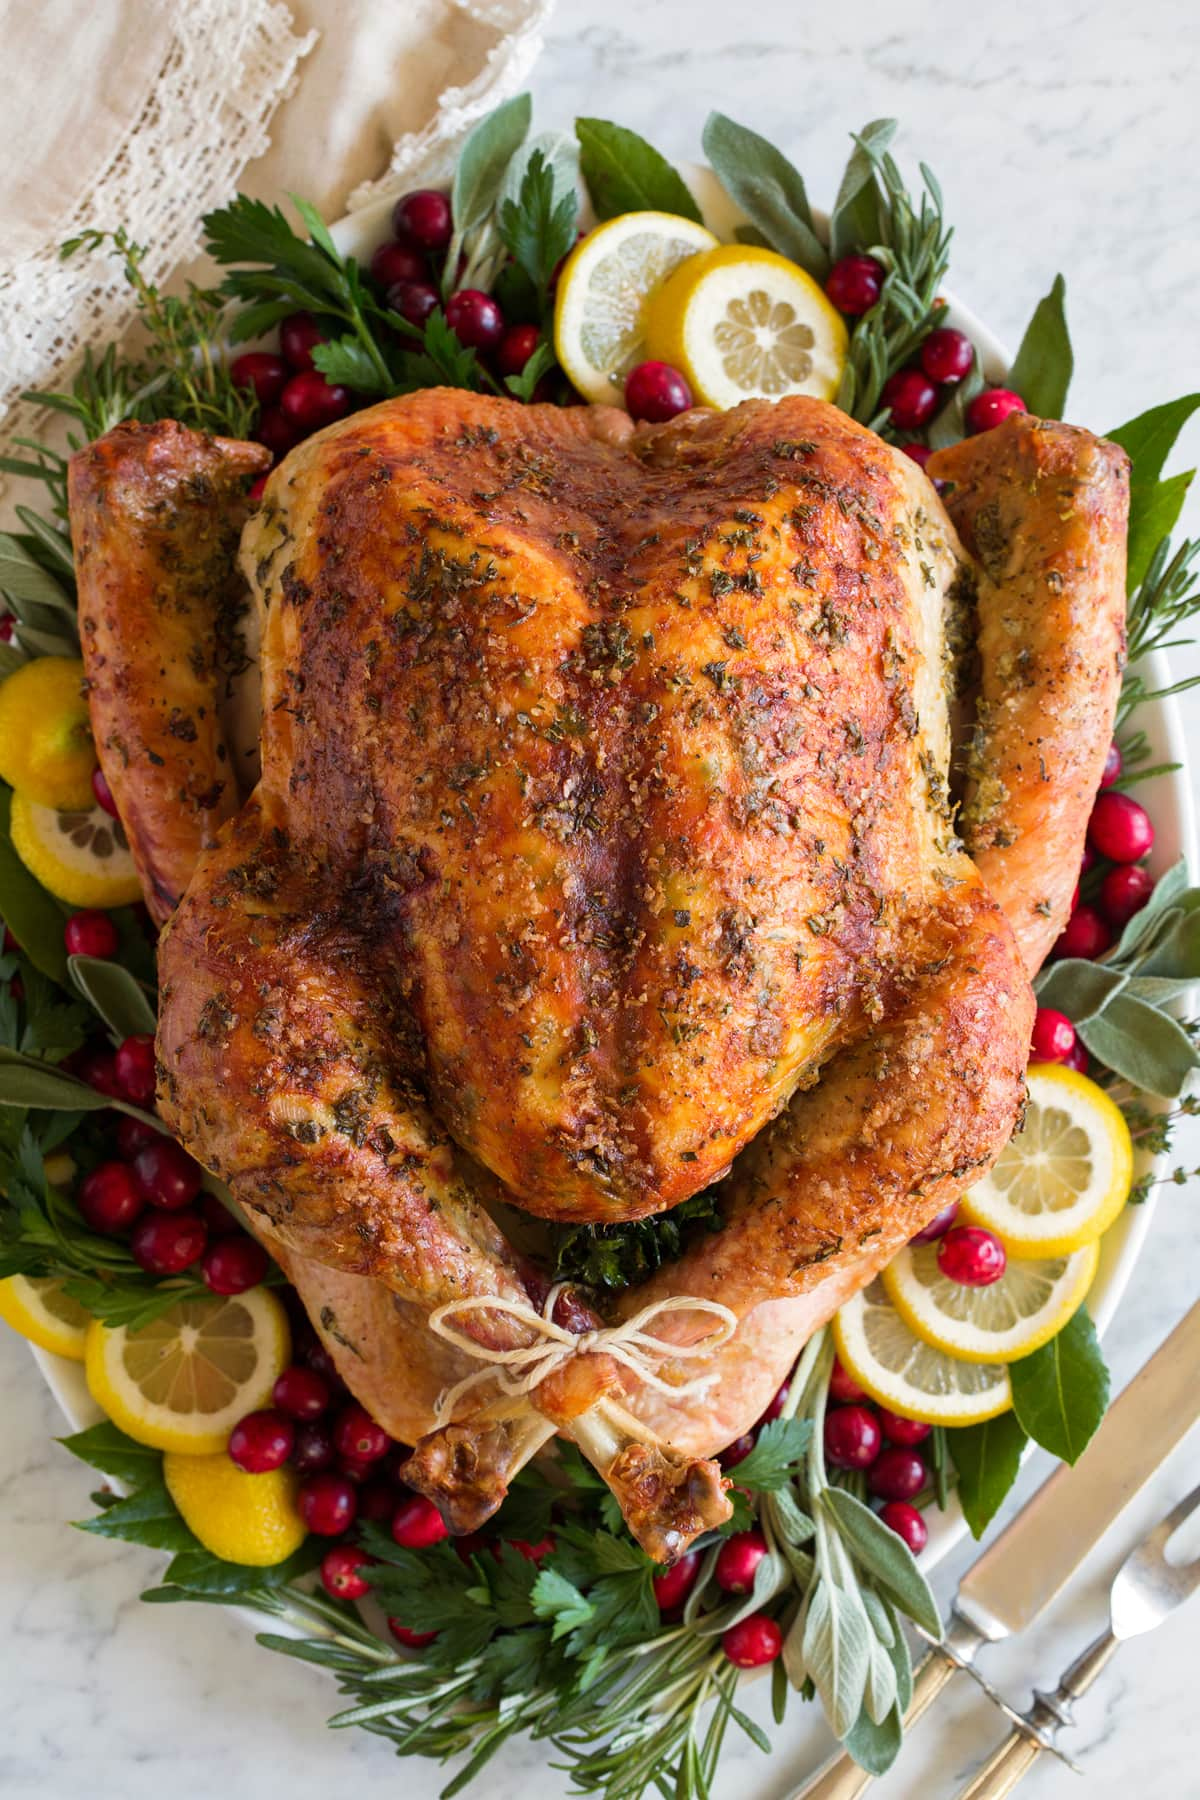 Overhead image of whole turkey on a white platter garnished with fresh herbs, lemon slices and cranberries around it.